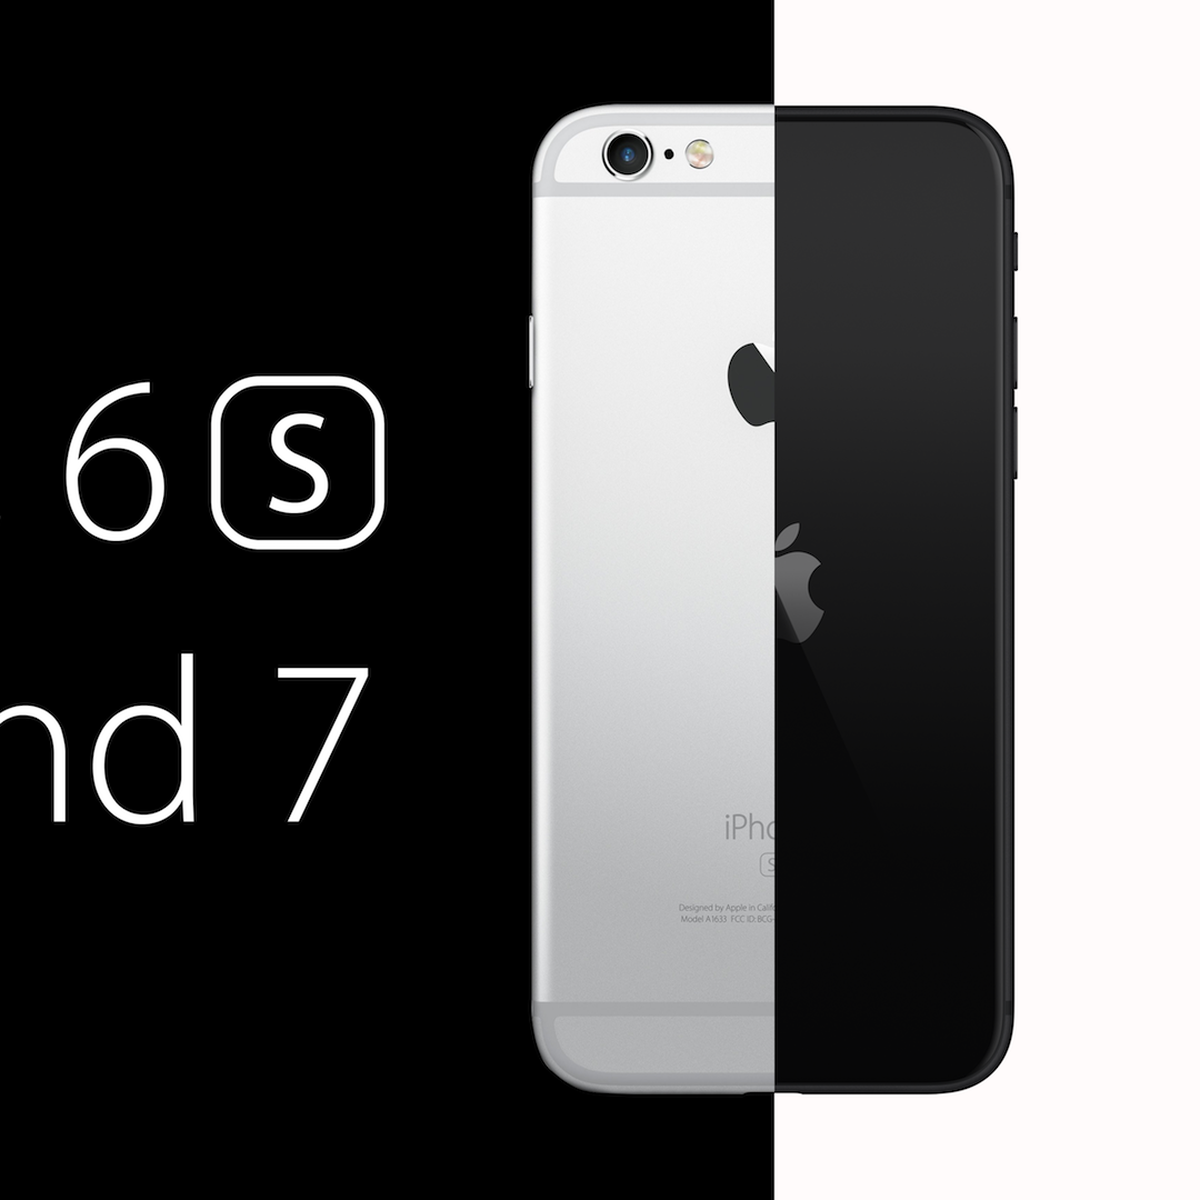 iphone 6 6s 7 vs iphone se should you upgrade macrumors iphone 6 6s 7 vs iphone se should